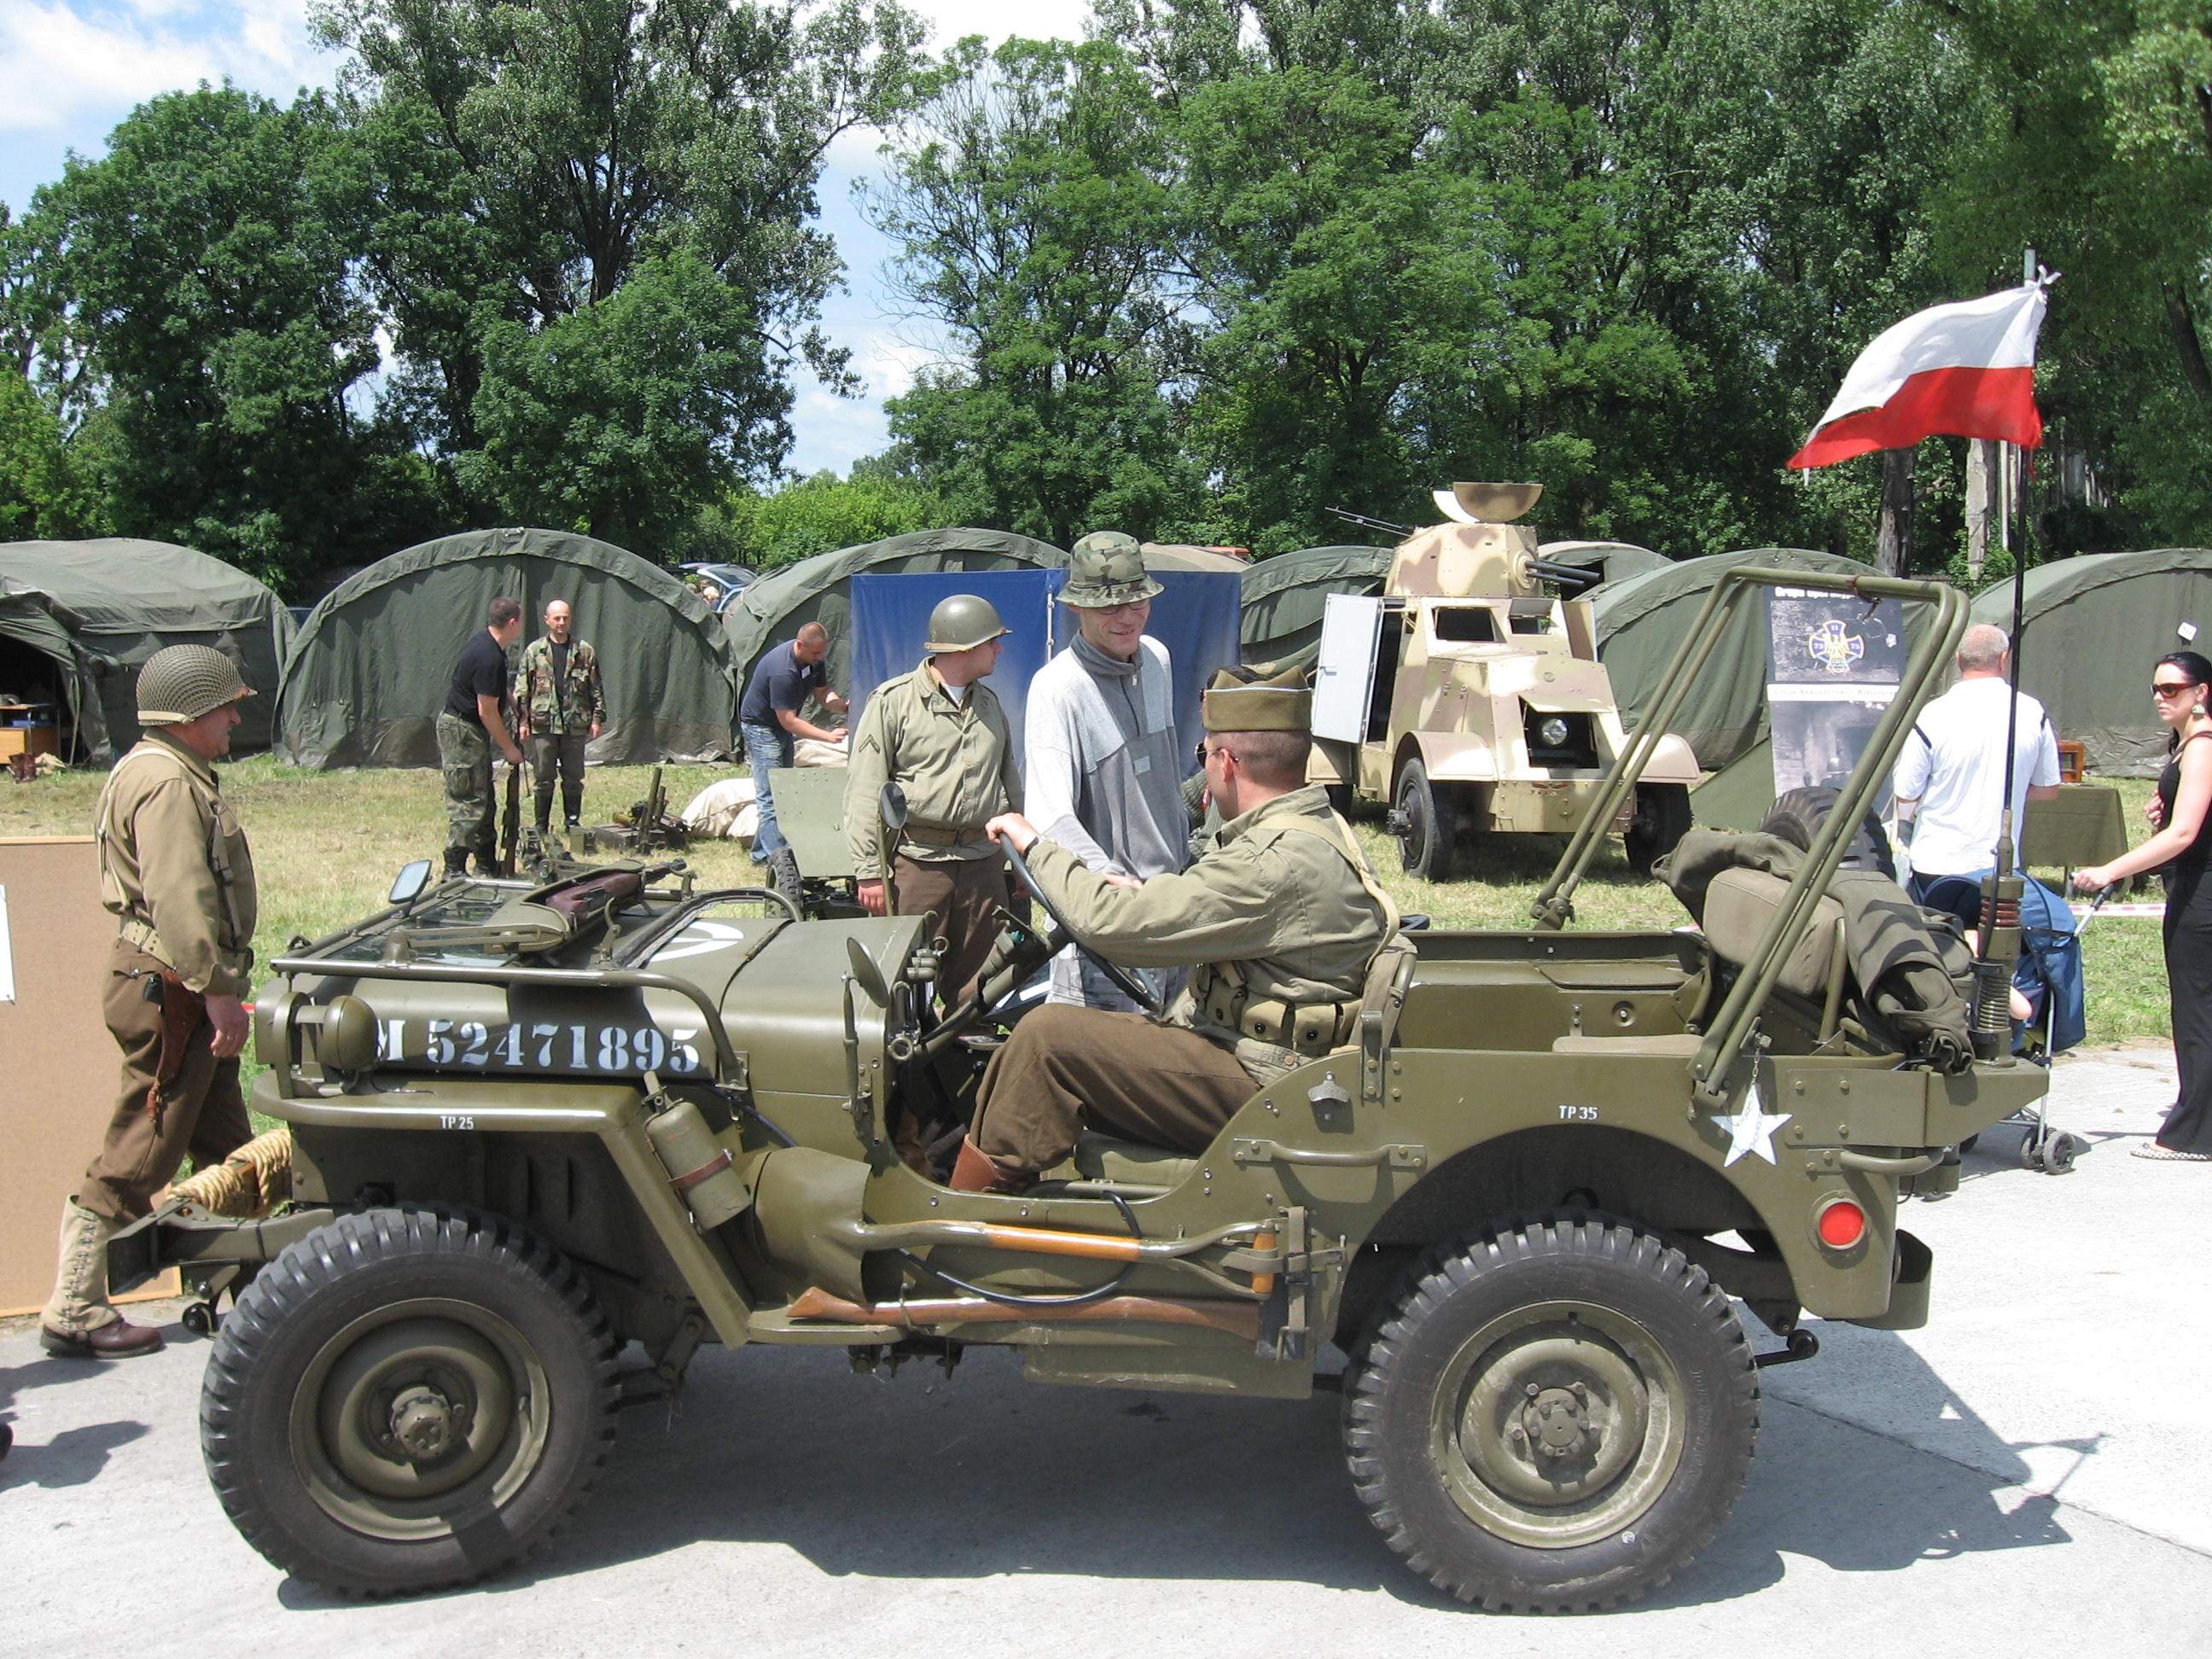 Ww2 Jeep File:Willys MB during the VII Aircraft Picnic in Kraków 3 ...